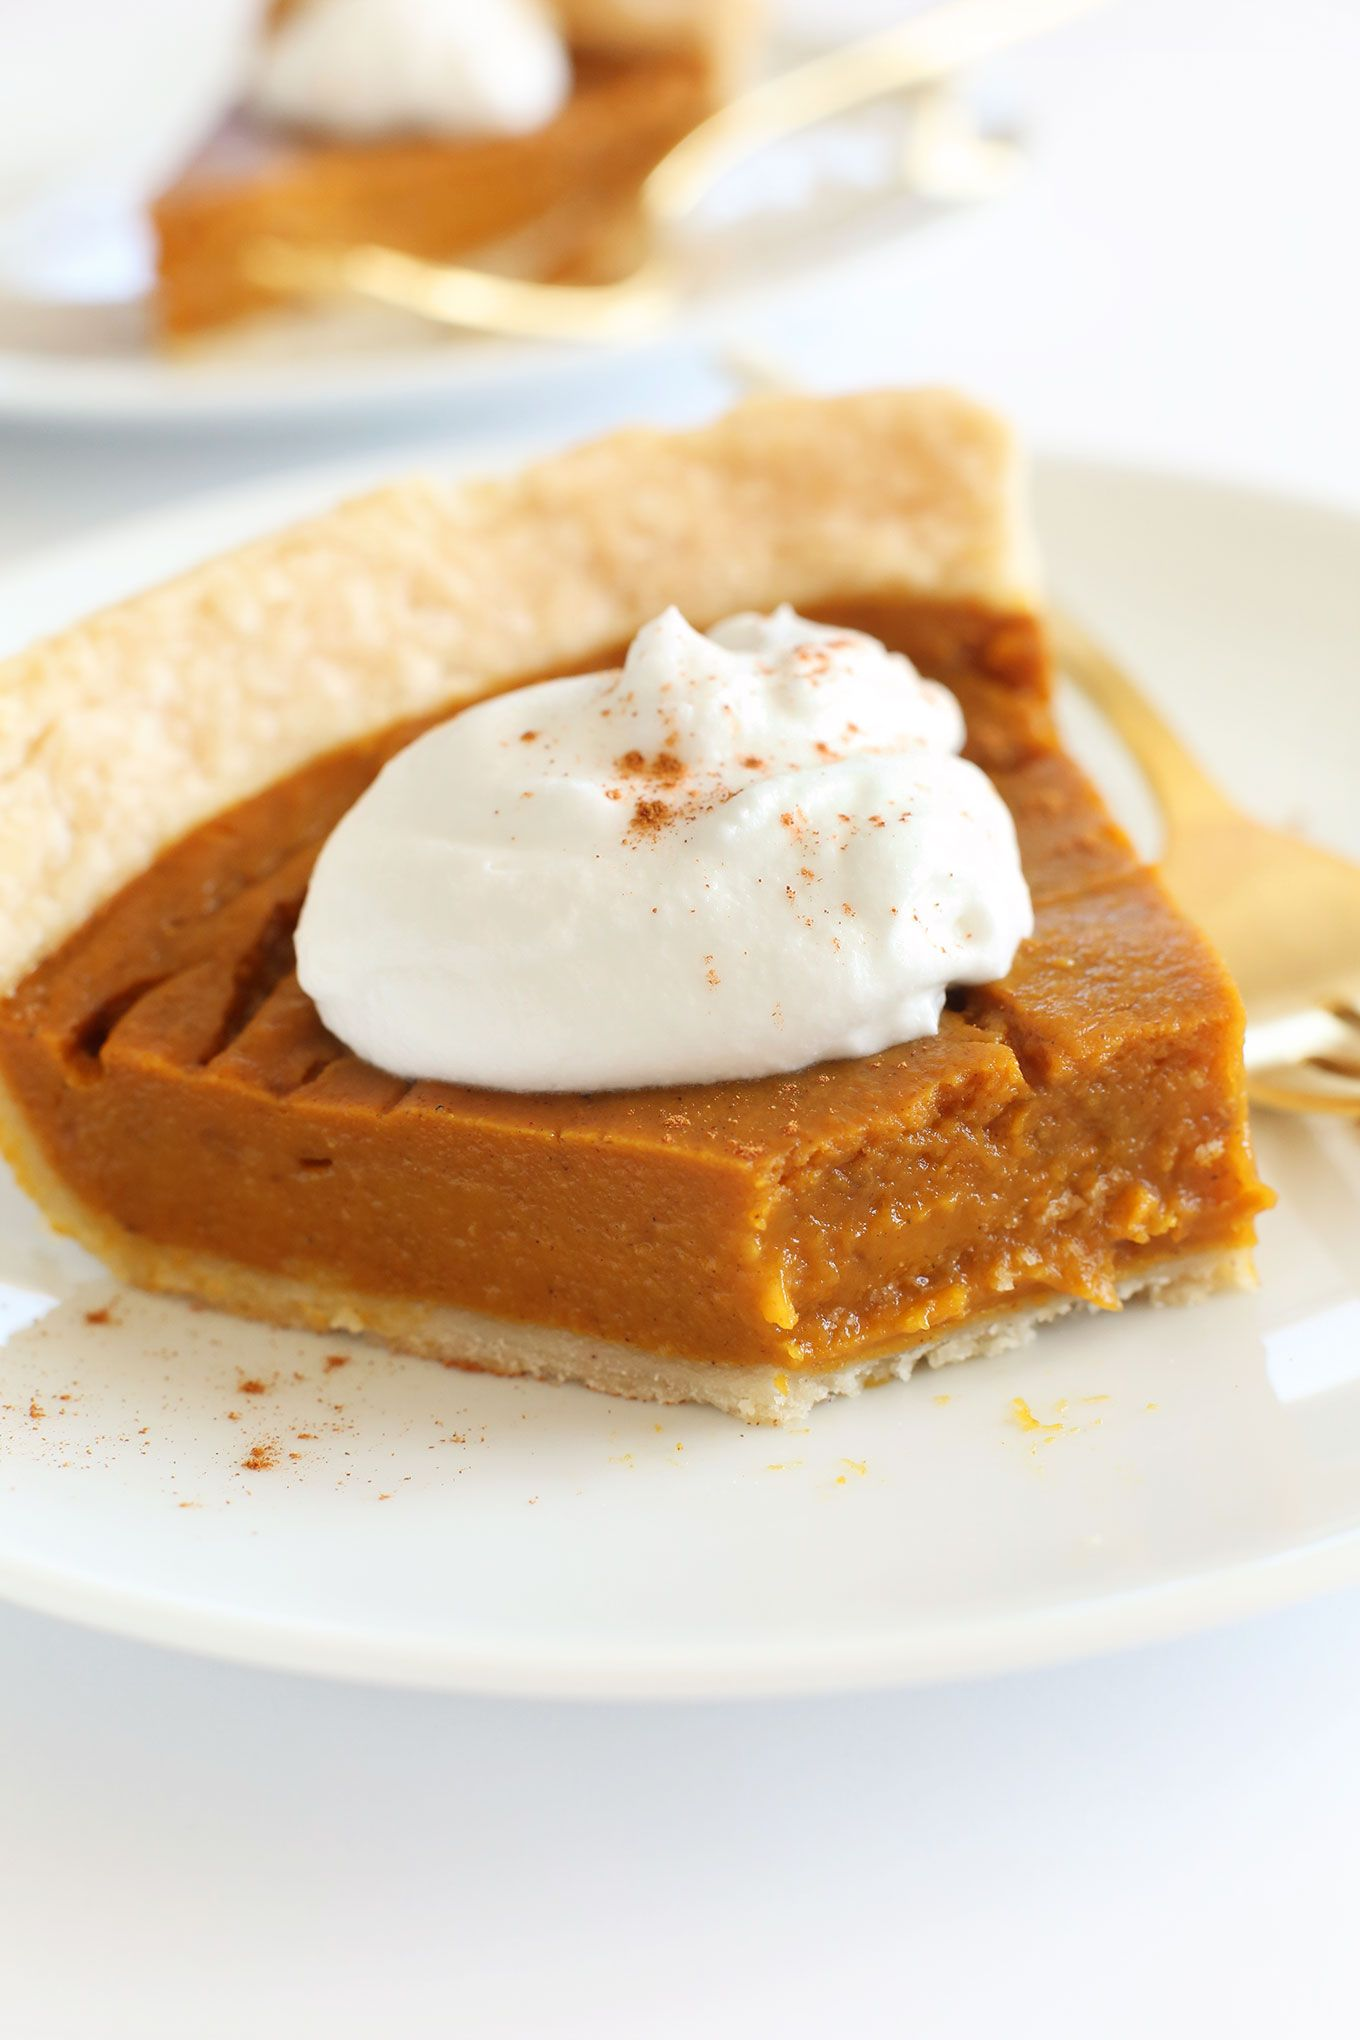 Vegan Gluten Free Pumpkin Pie Minimalist Baker Recipes Recipe Vegan Pumpkin Pie Gluten Free Pumpkin Pie Pumpkin Pie Recipes